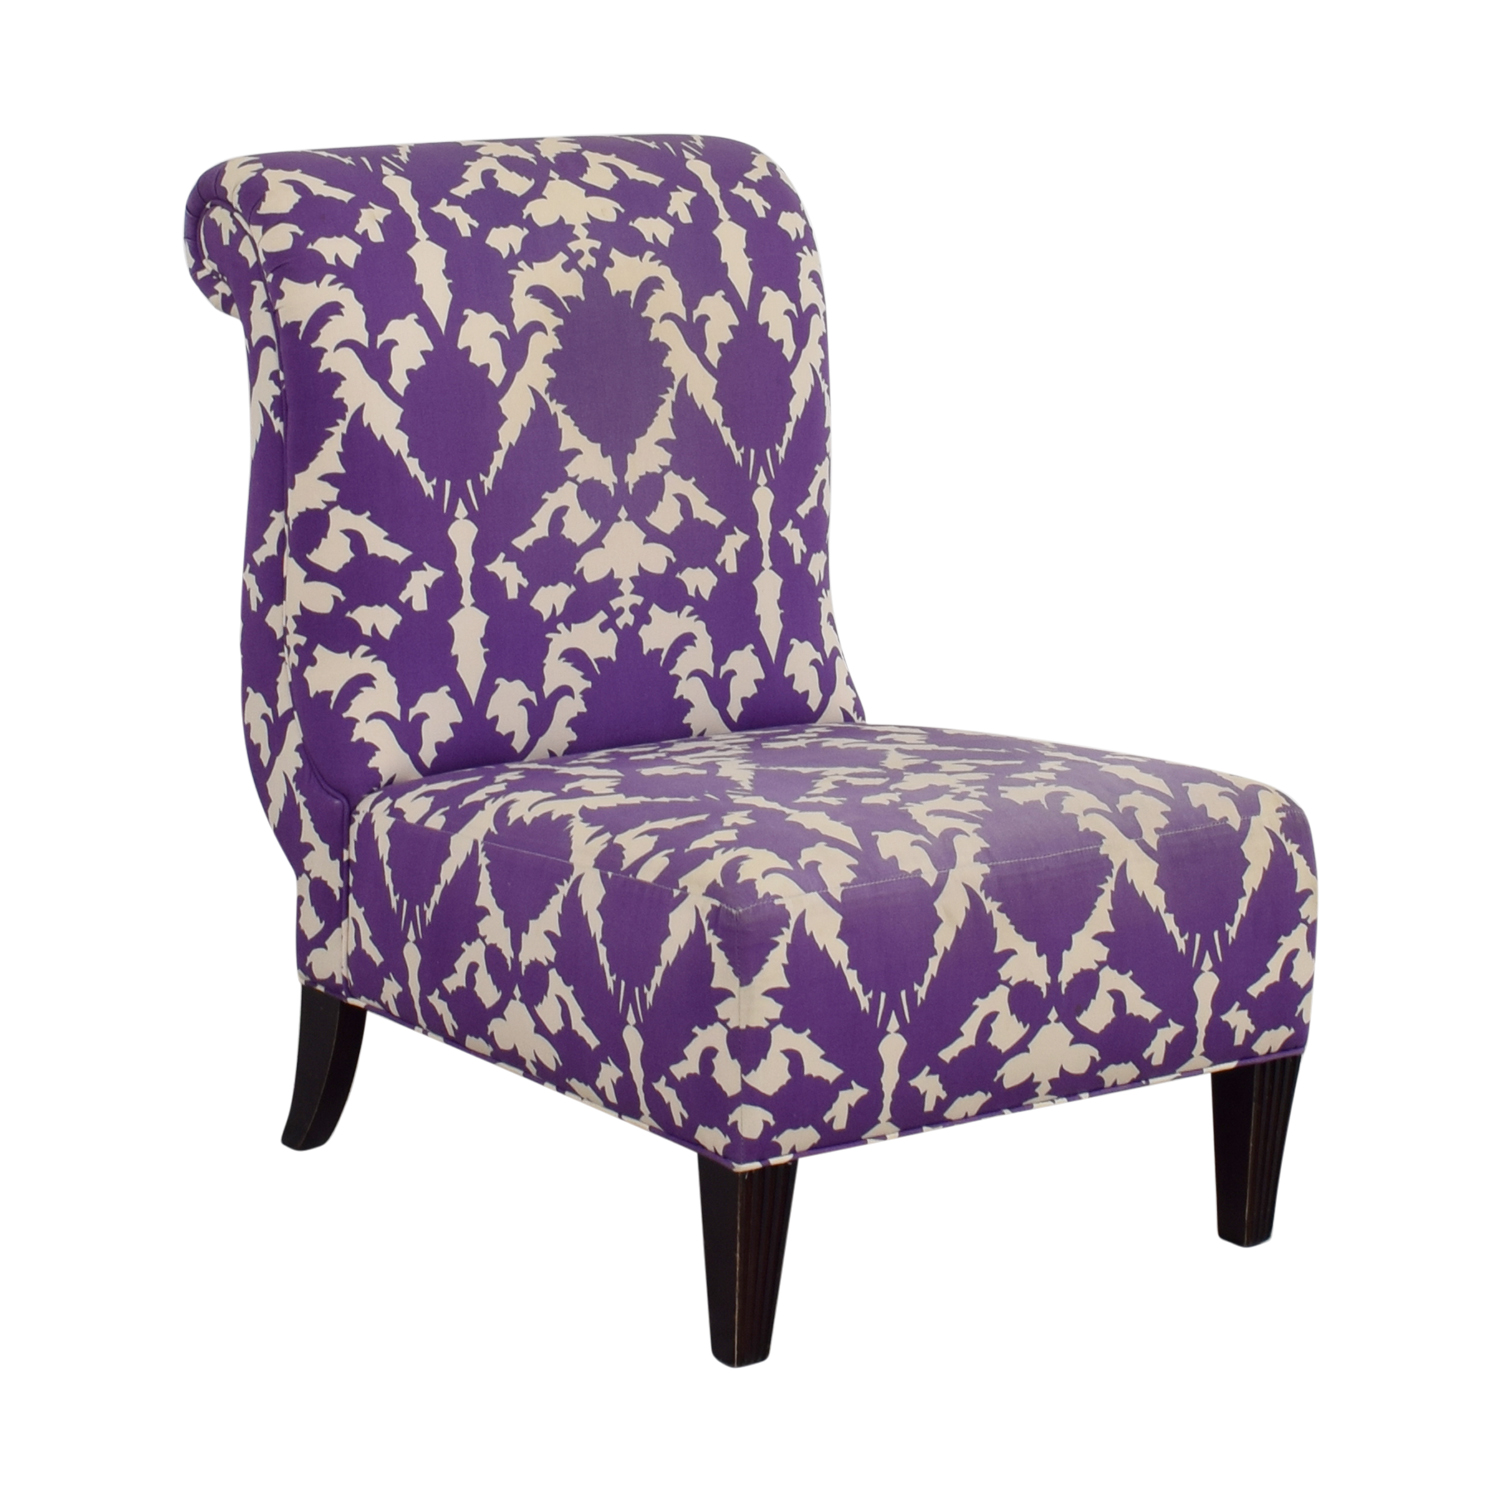 What Is An Accent Chair Used For: Baker Baker Madeline Weintraub Purple Accent